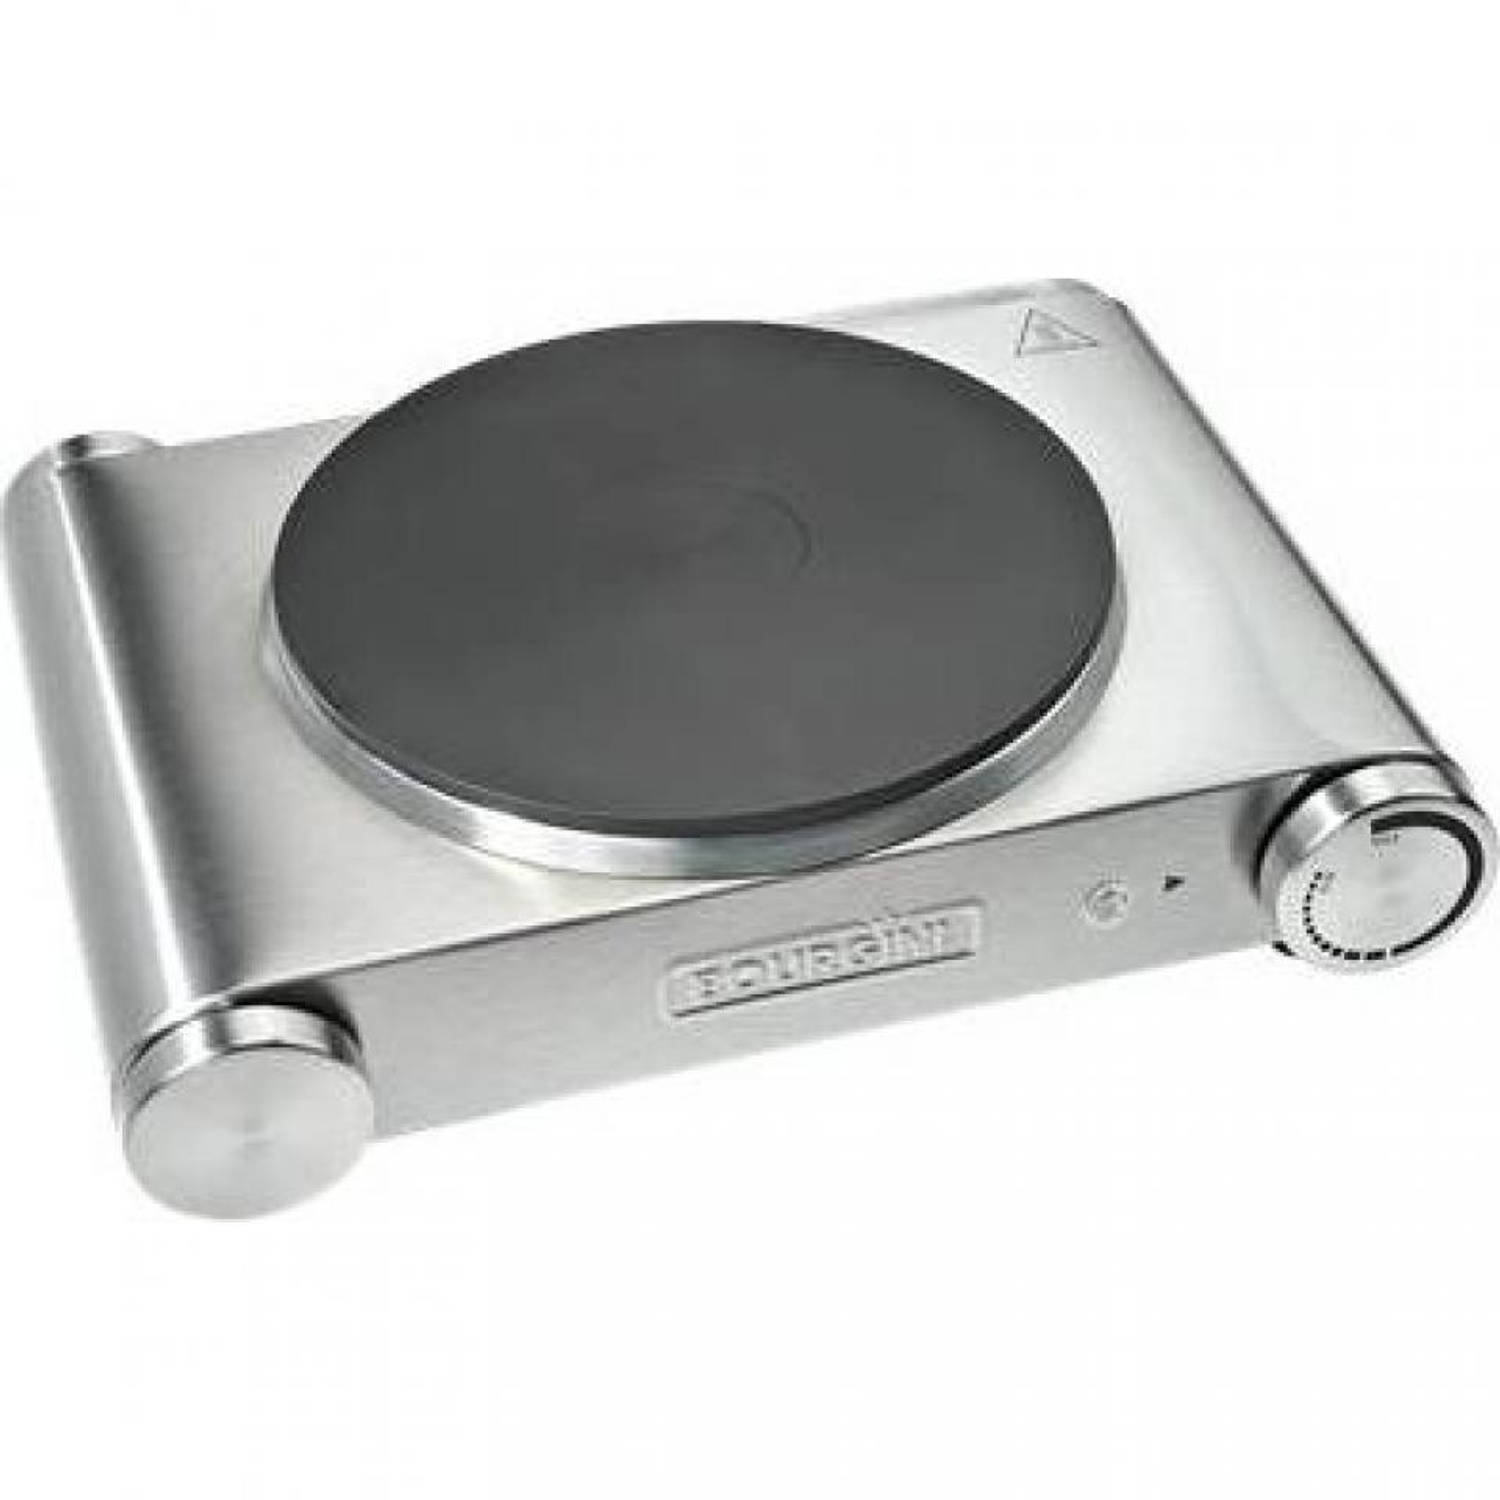 Bourgini Classic Cooking Plate Single 30.1000.00.00